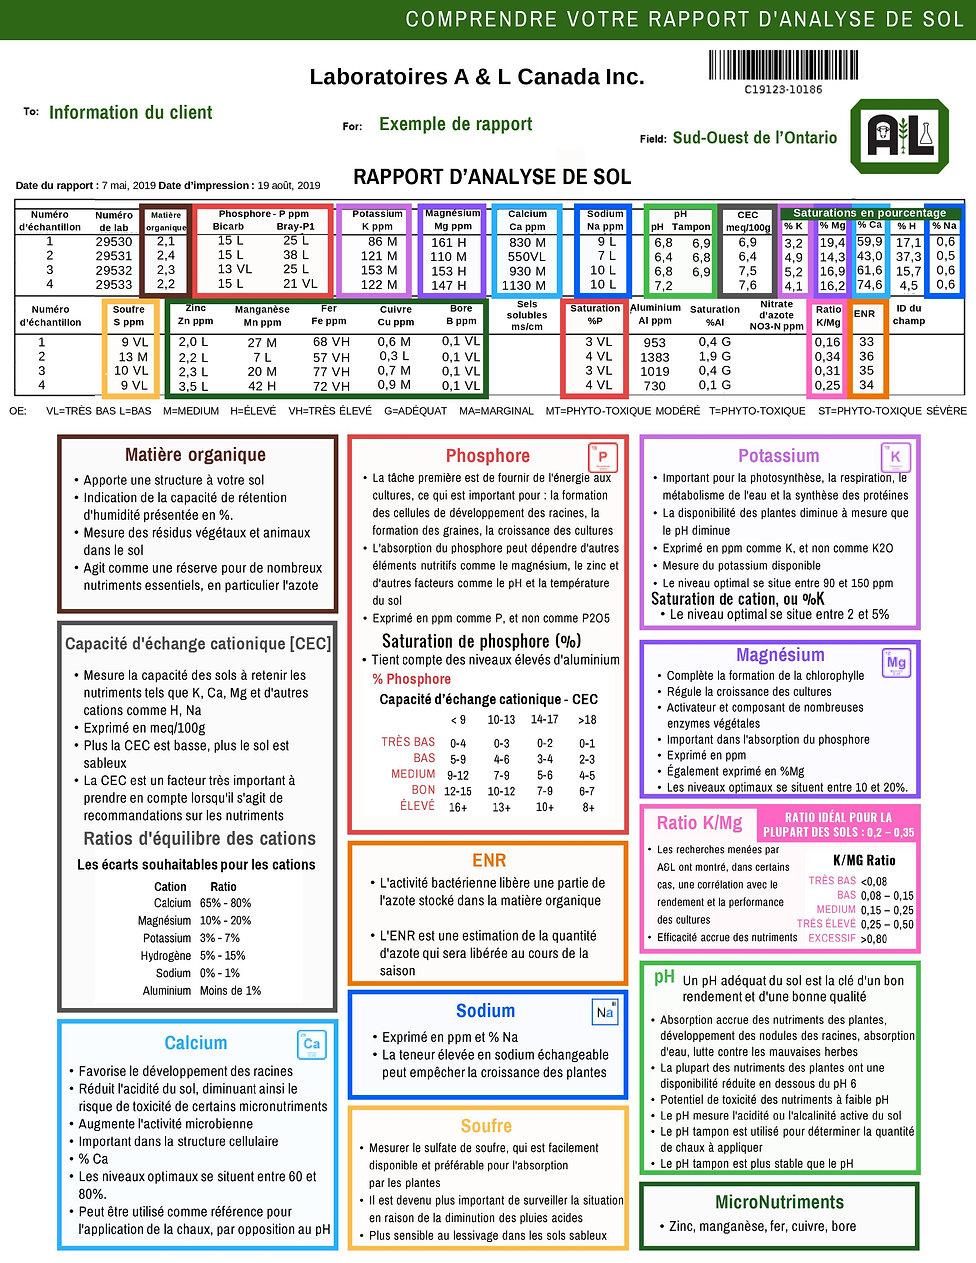 FRENCH Understanding Your Soil Report.jp